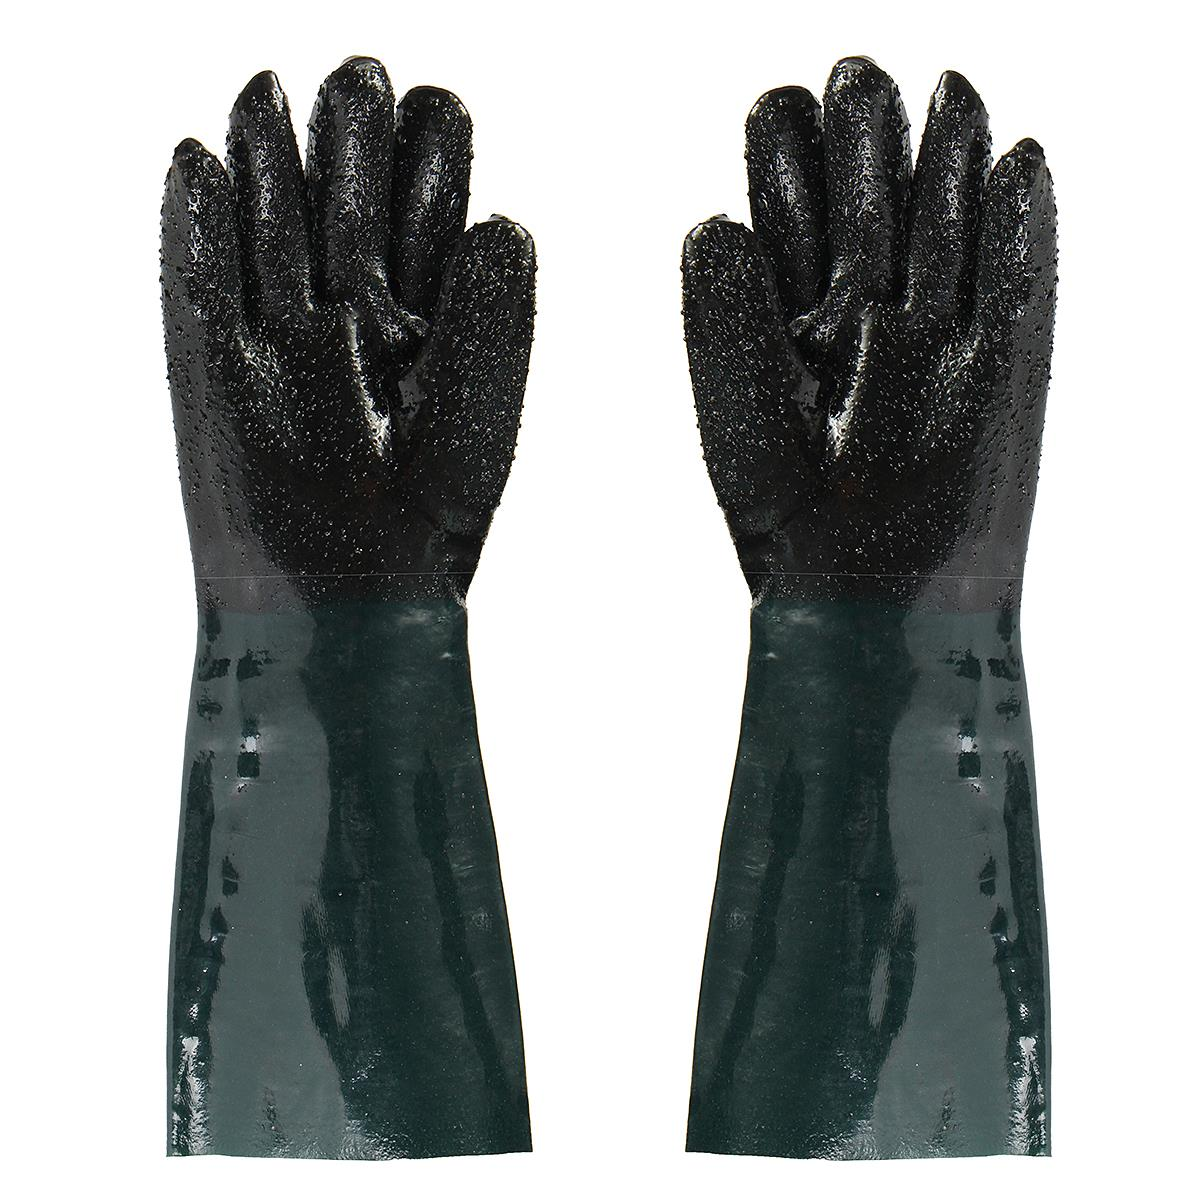 NEW 48CM Rubber Sandblaster Sand Blaster Sandblasting Gloves For Sandblast Cabinets Safety Glove medea